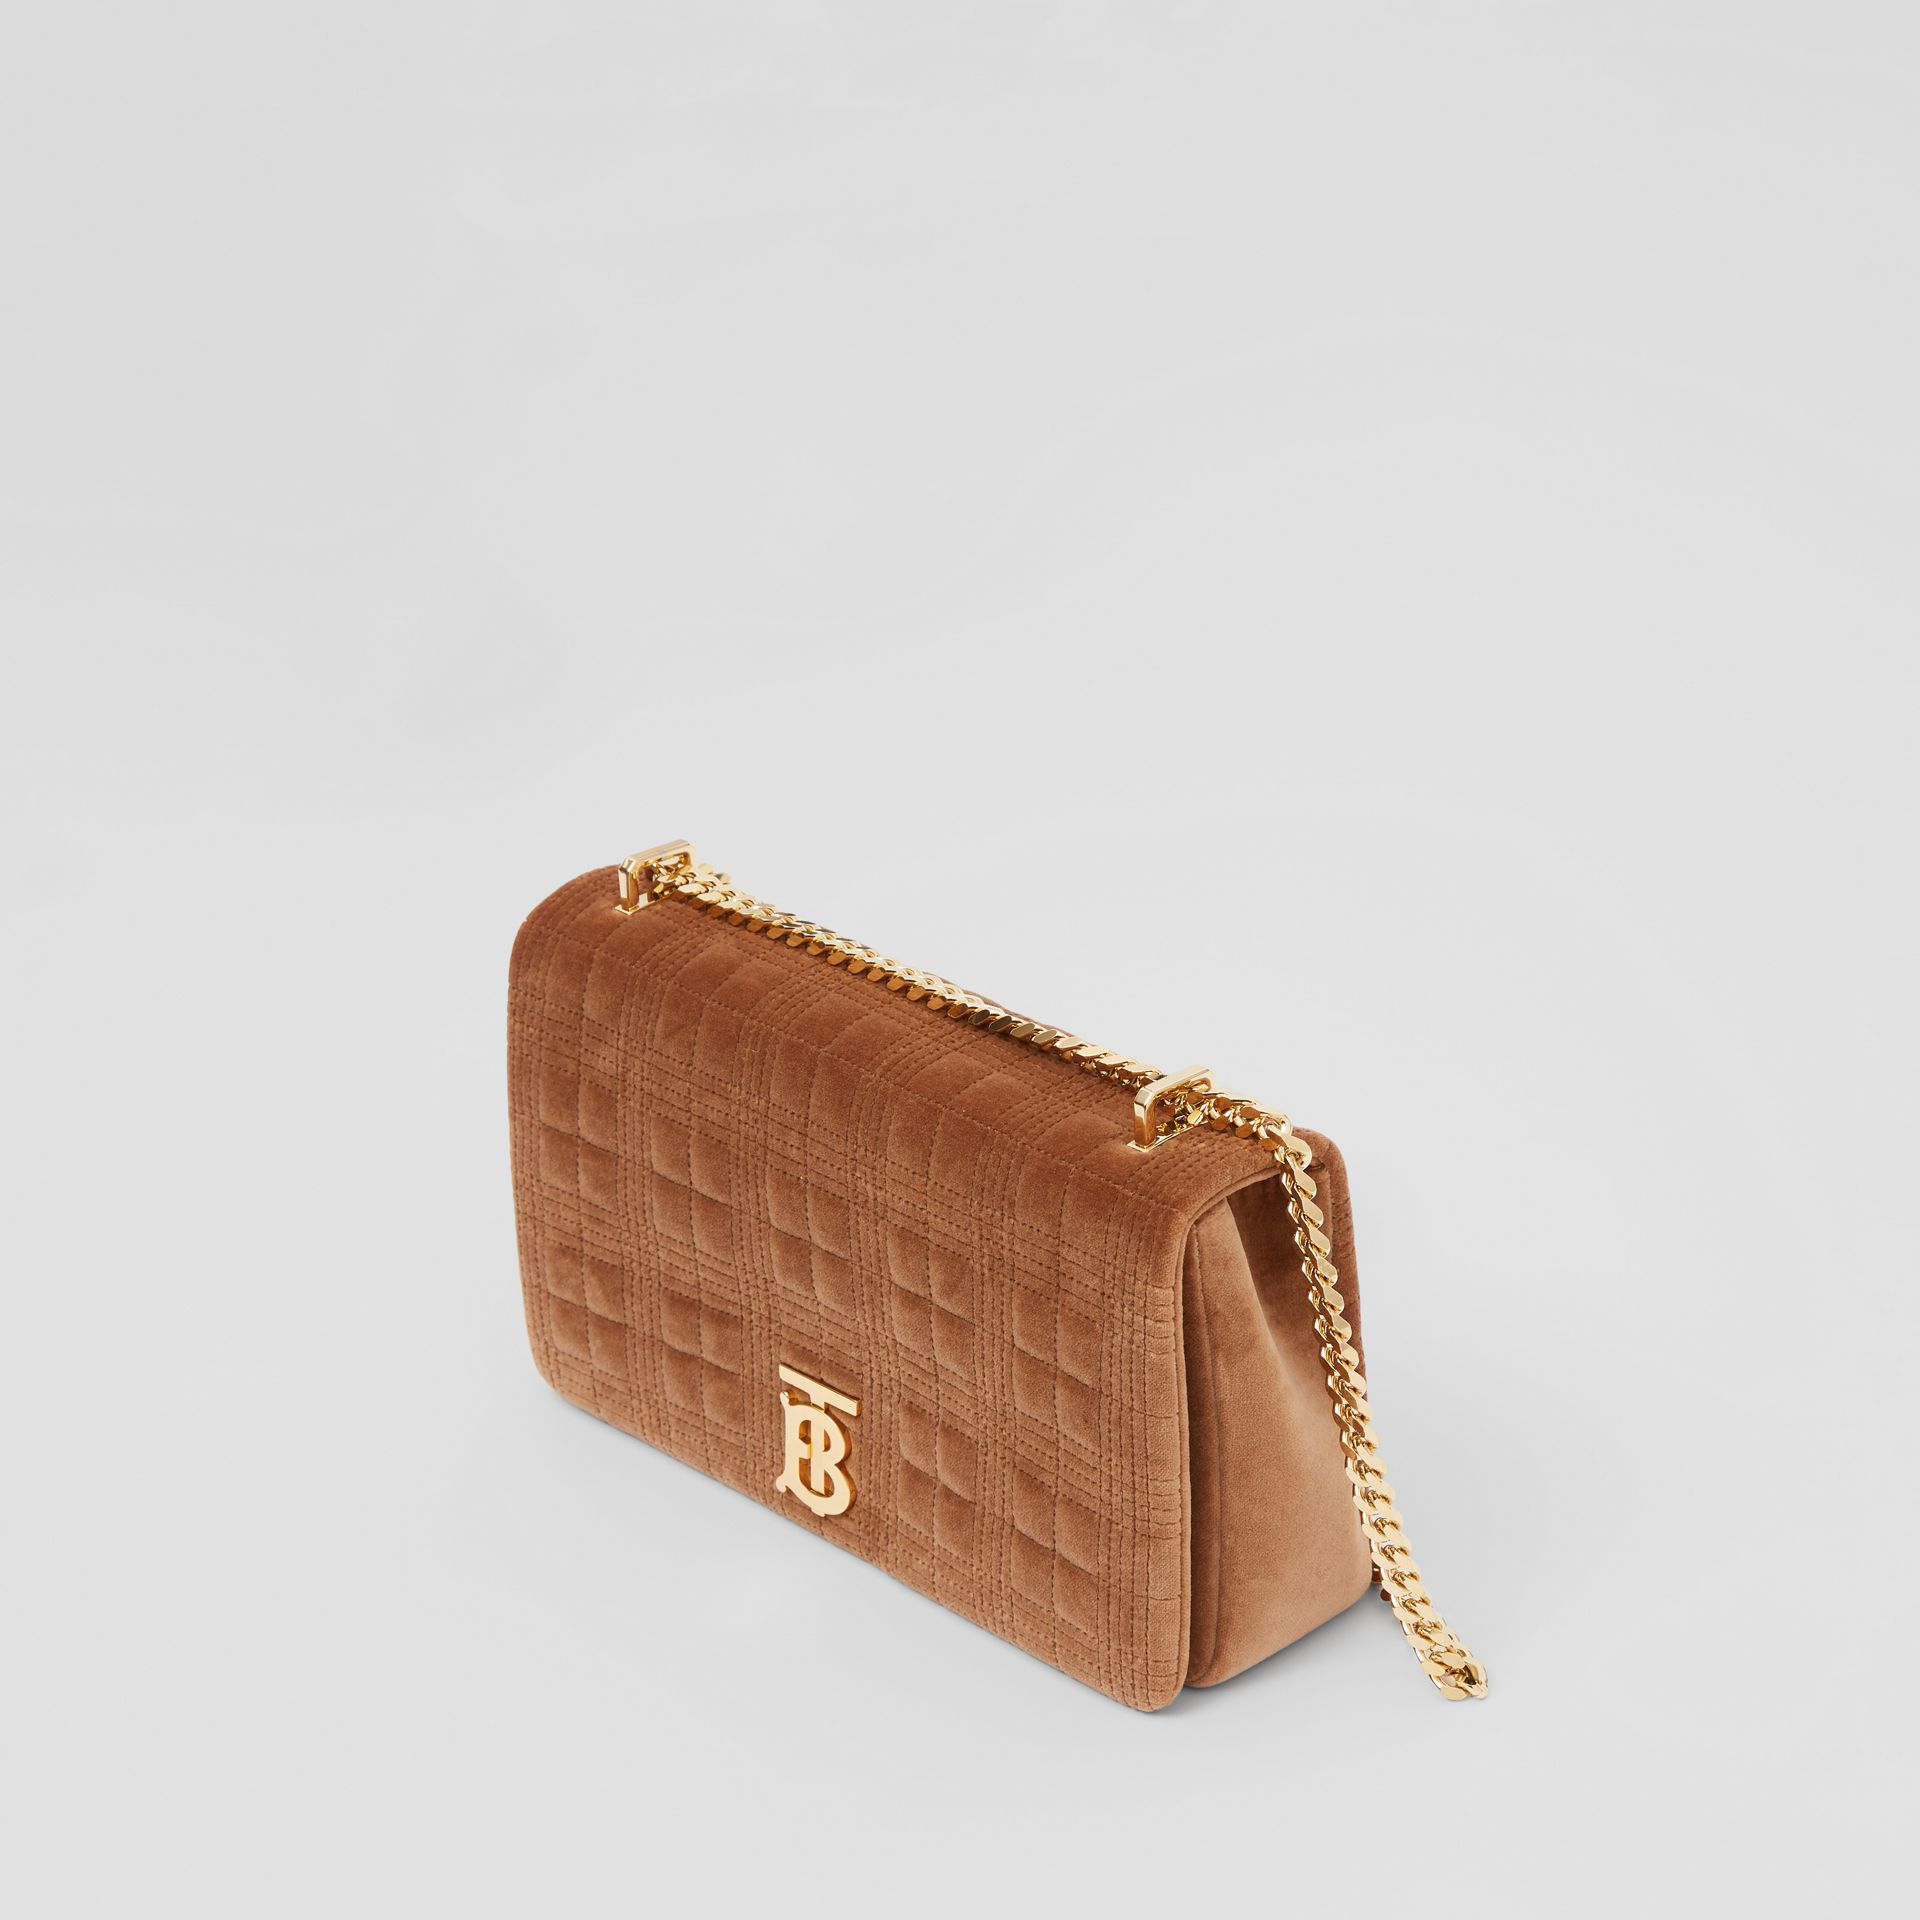 Medium Quilted Velvet Lola Bag in Fawn - Women | Burberry United States - gallery image 3